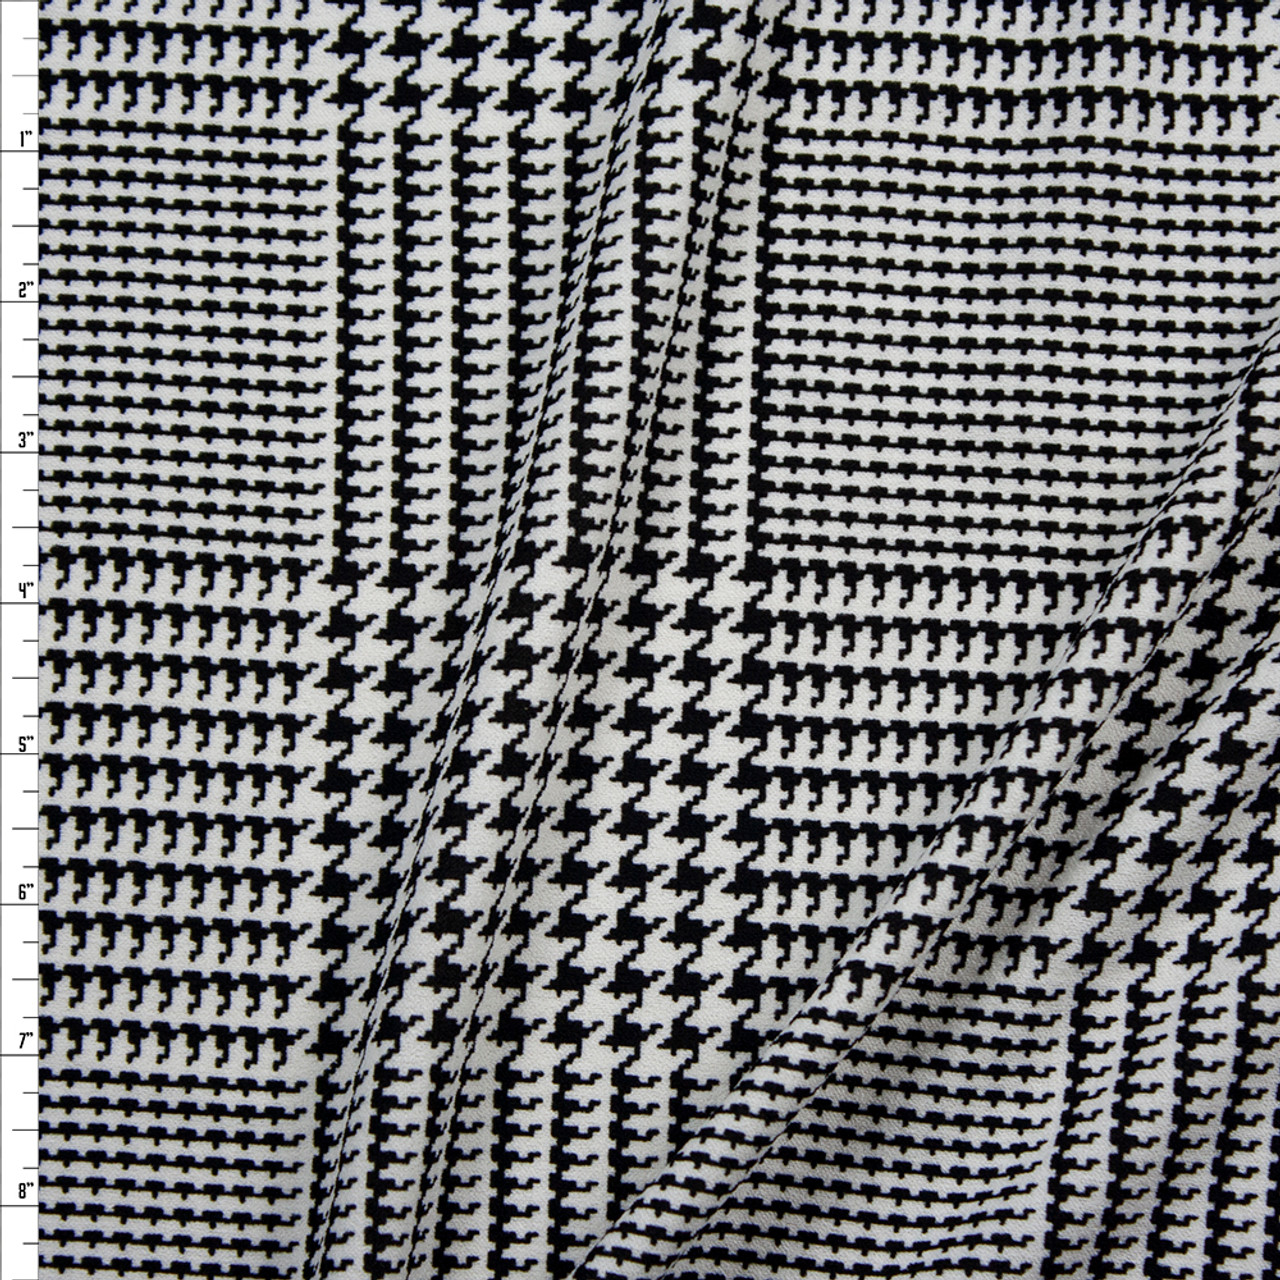 Cali Fabrics Black And White Houndstooth Plaid Midweight Crepe Knit Fabric By The Yard